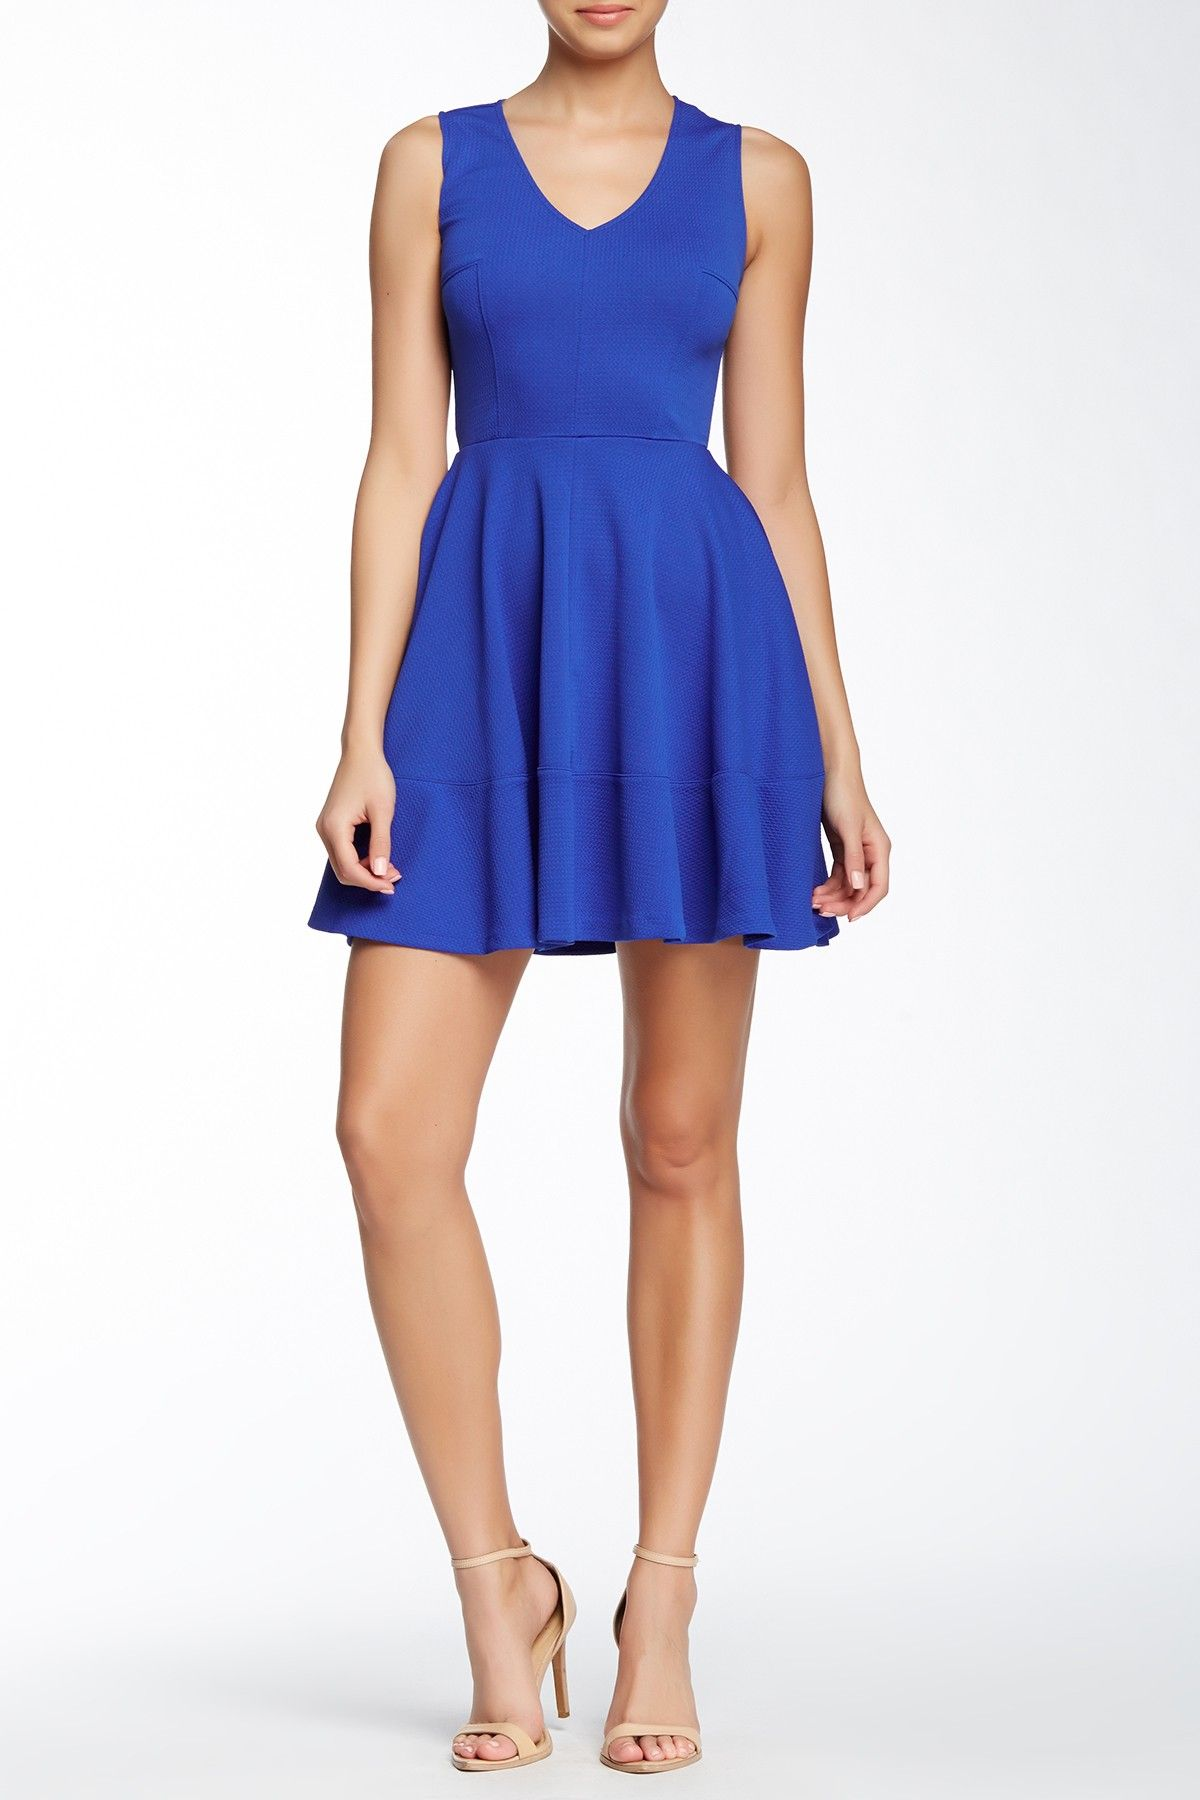 Textured Knit Fit & Flare Dress by Love...Ady on @nordstrom_rack